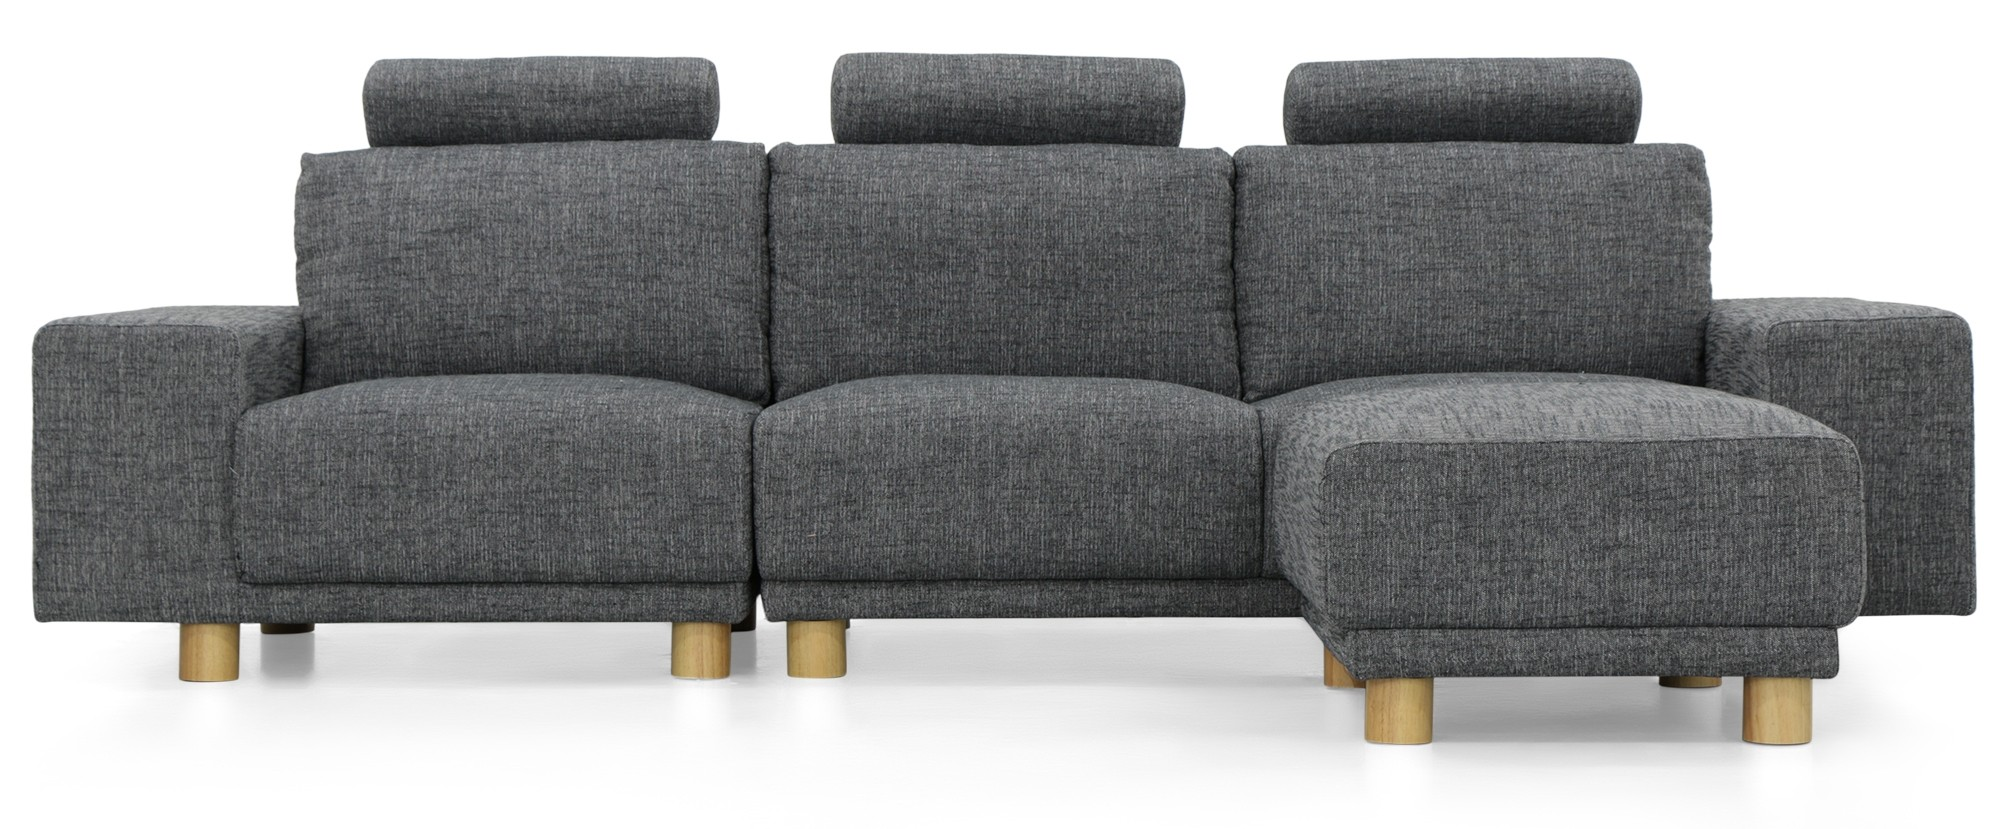 3 seater fabric sofa grey how to make a rv bed presley with ottoman furniture